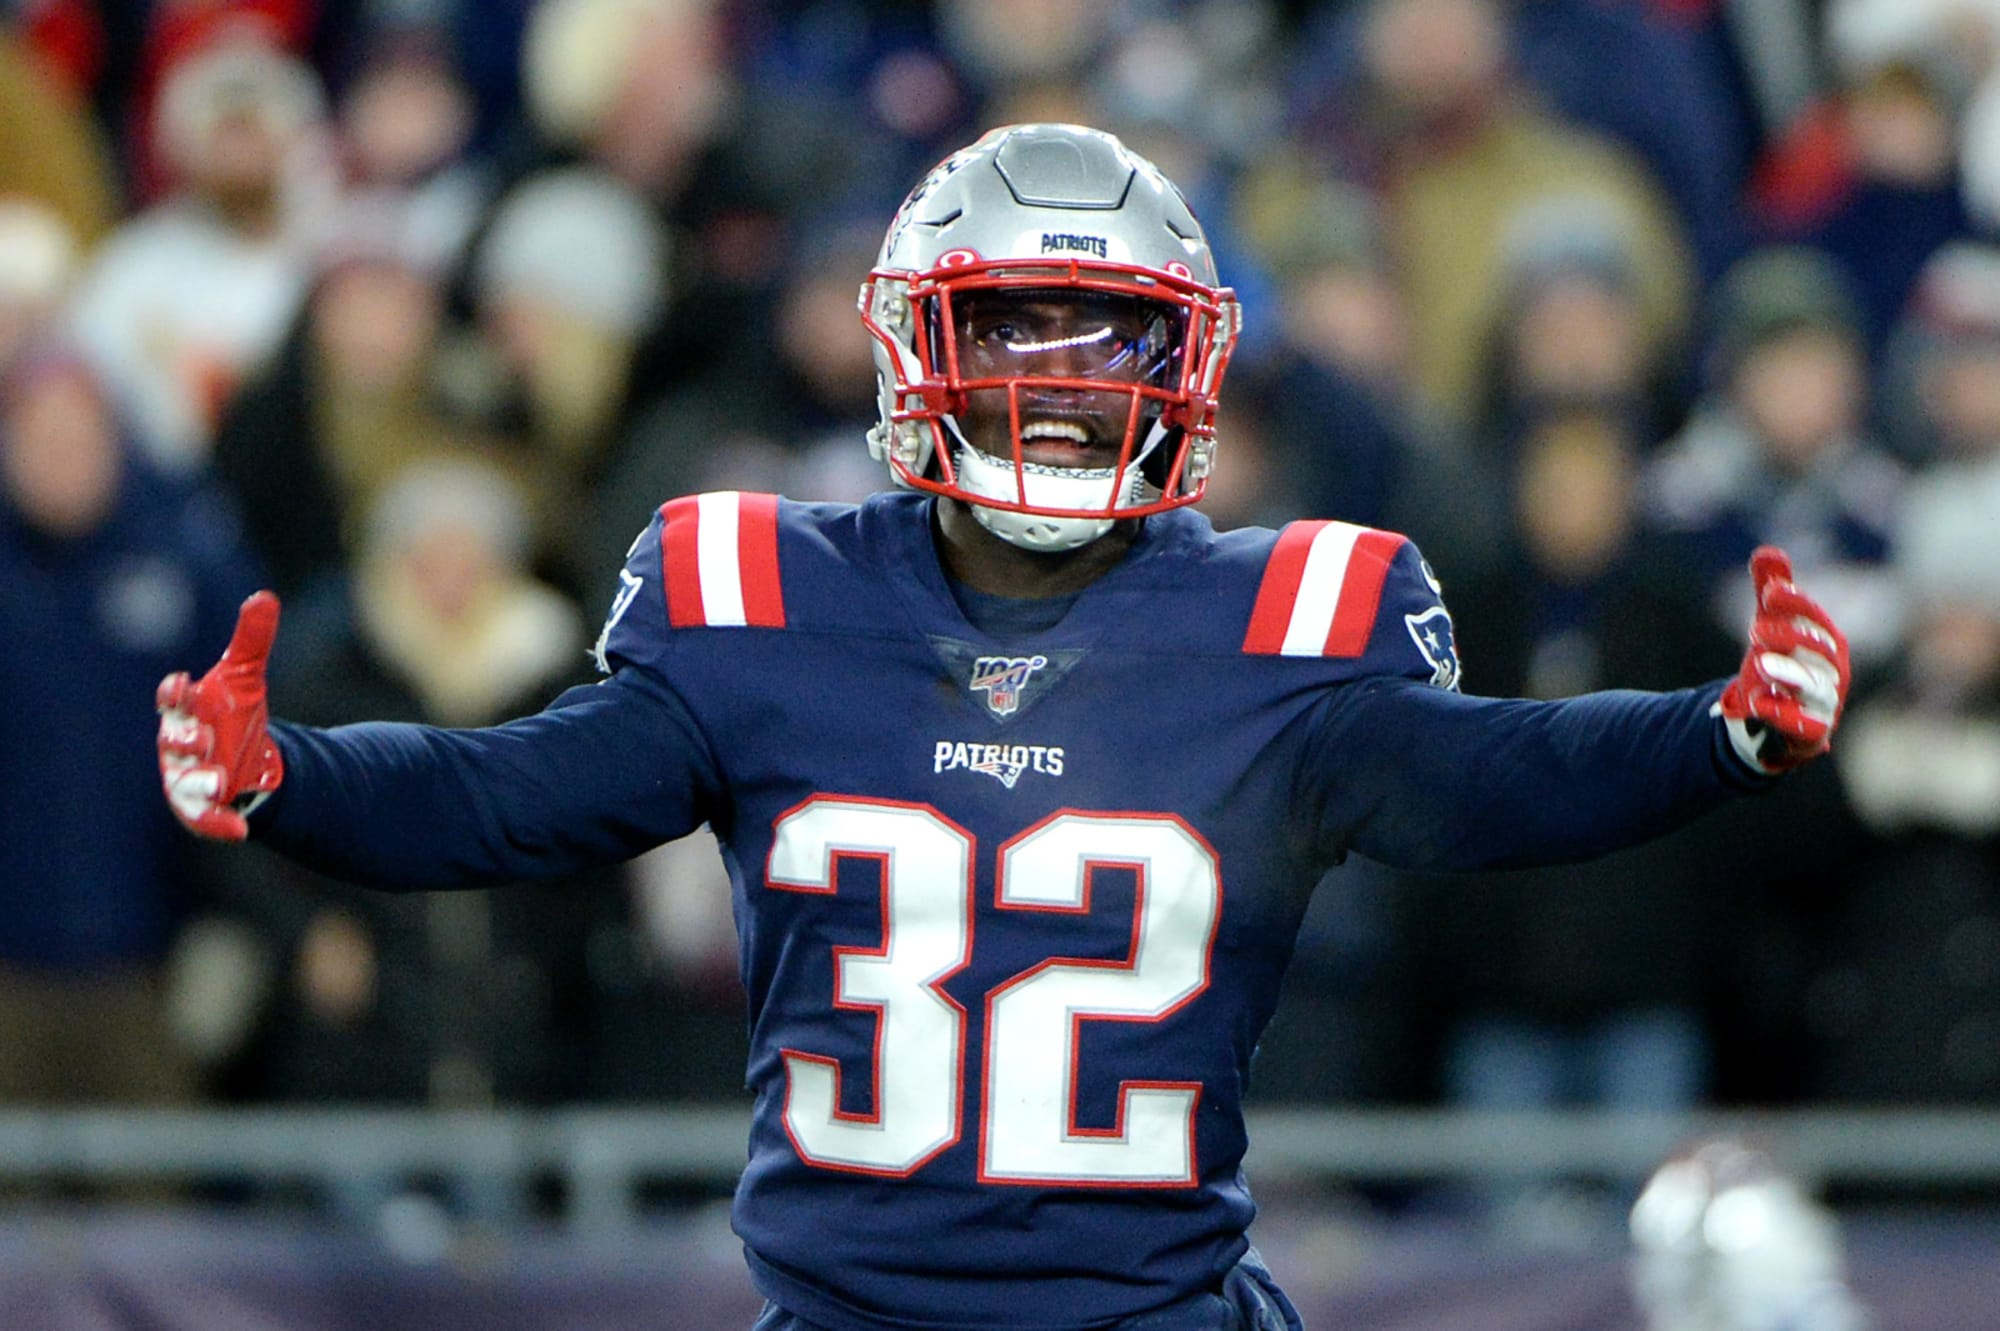 Patriots: Devin McCourty and teammates pay tribute to James White ...